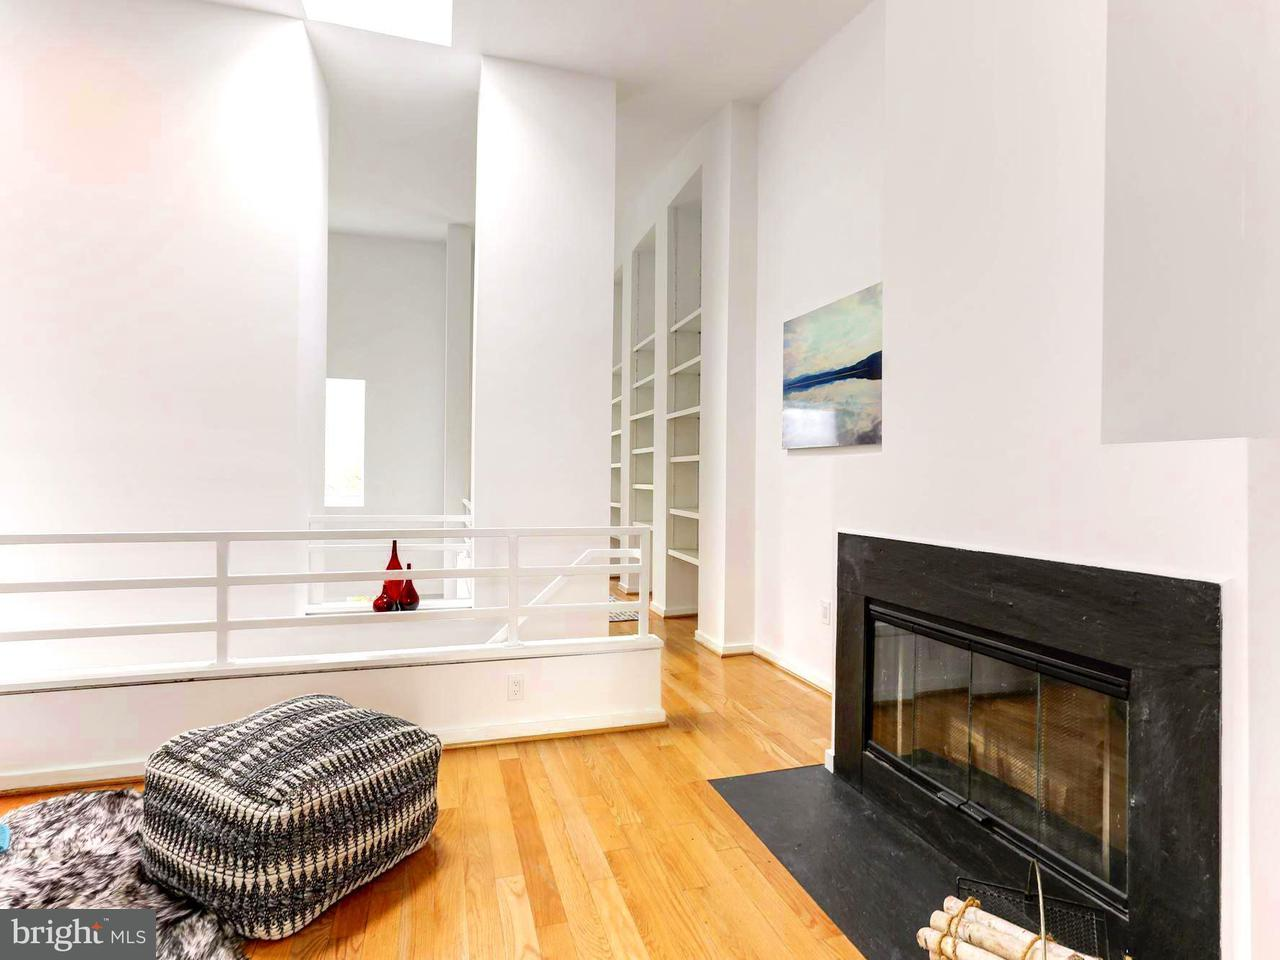 Additional photo for property listing at 1429 R St Nw #A 1429 R St Nw #A Washington, Округ Колумбия 20009 Соединенные Штаты